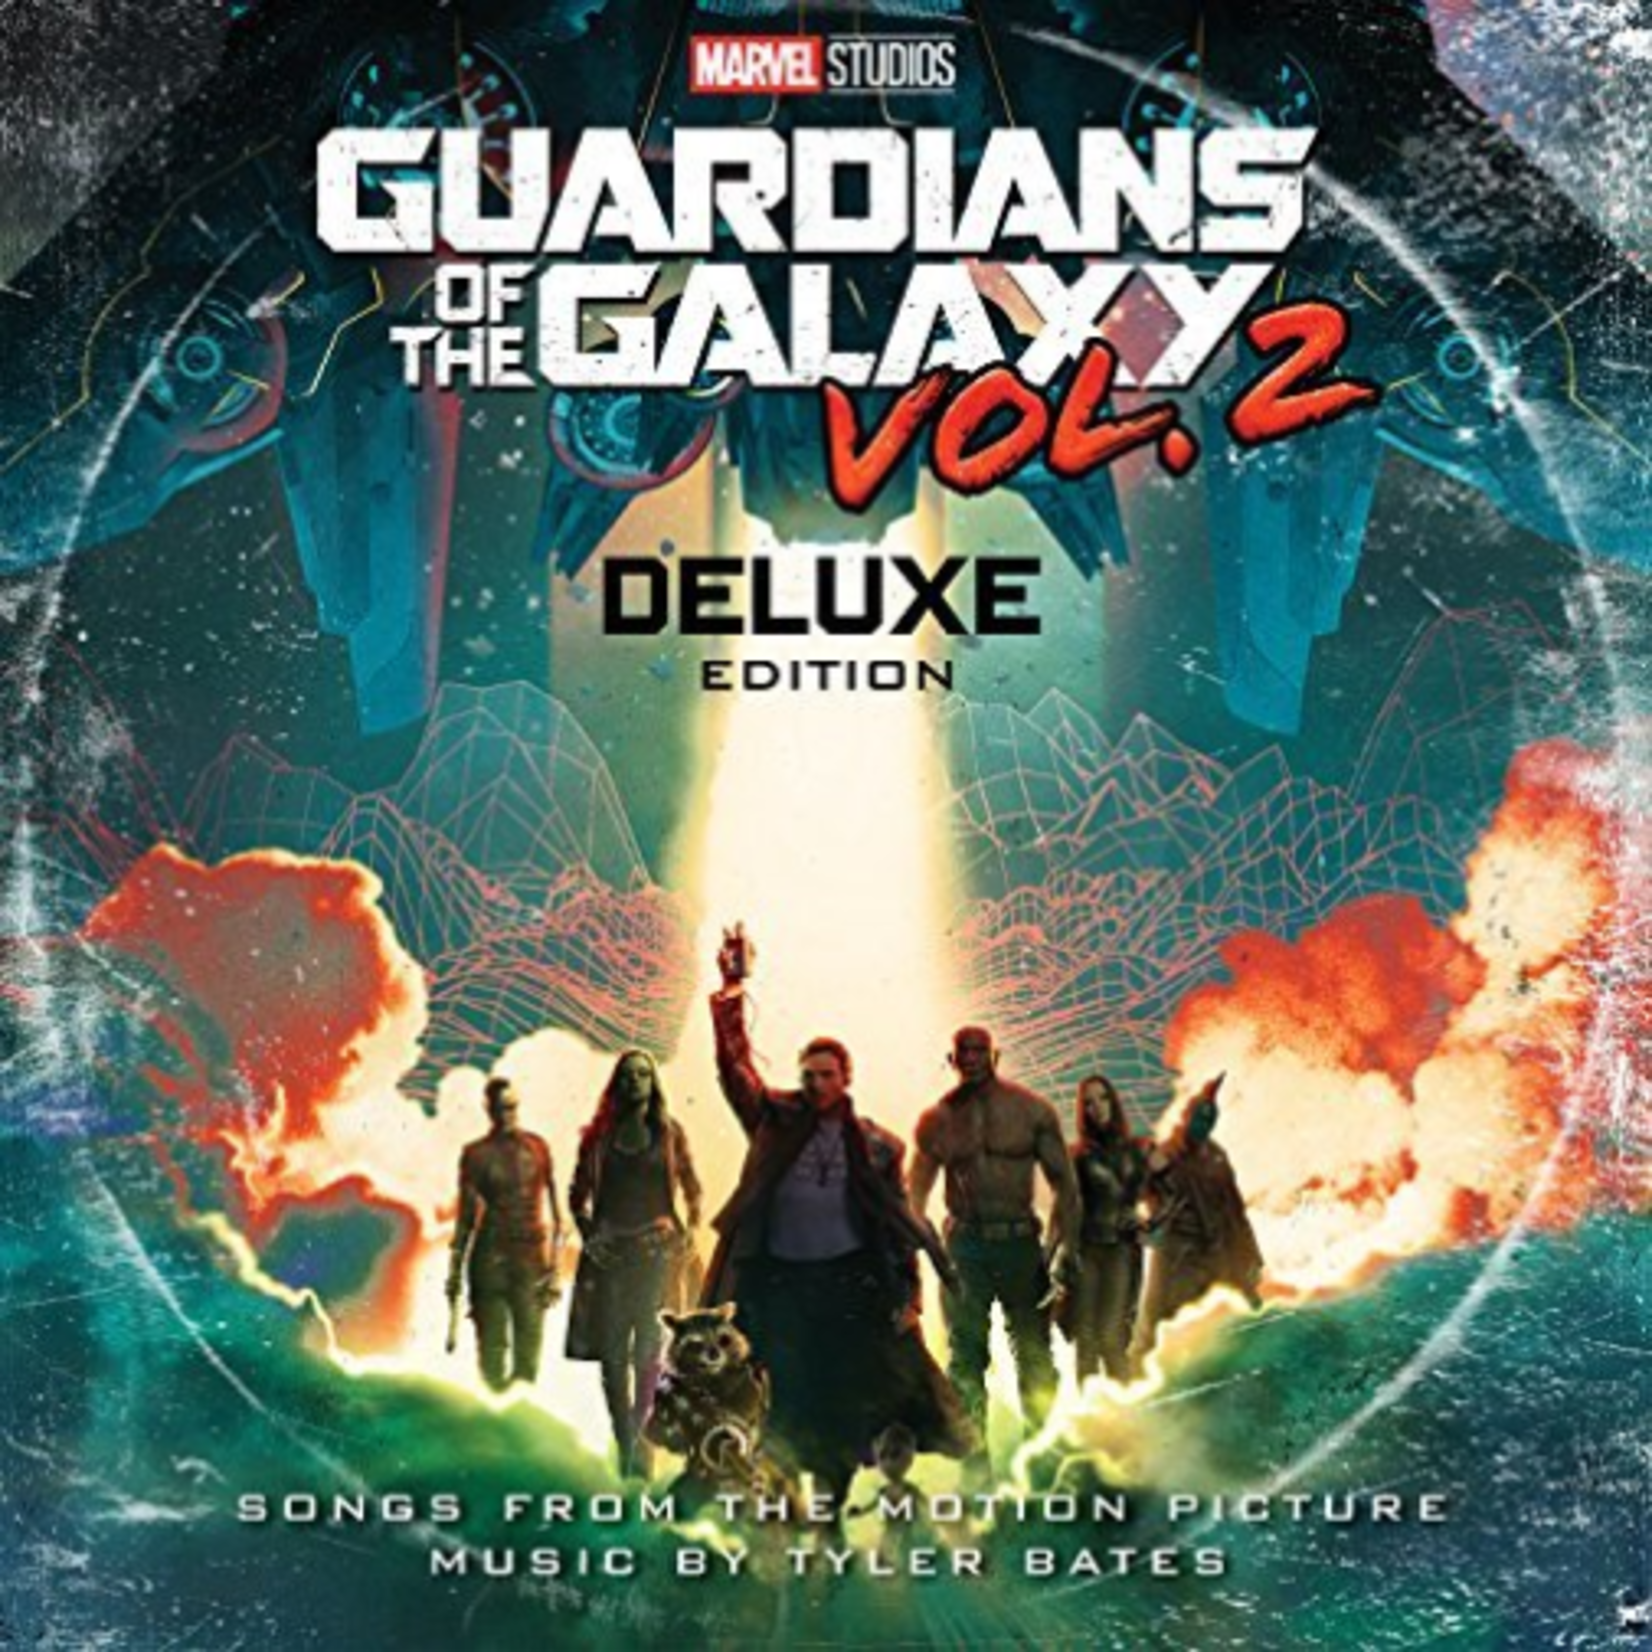 VARIOUS ARTISTS GUARDIANS OF THE GALAXY VOL. 2 (DELUXE VINYL EDITION)